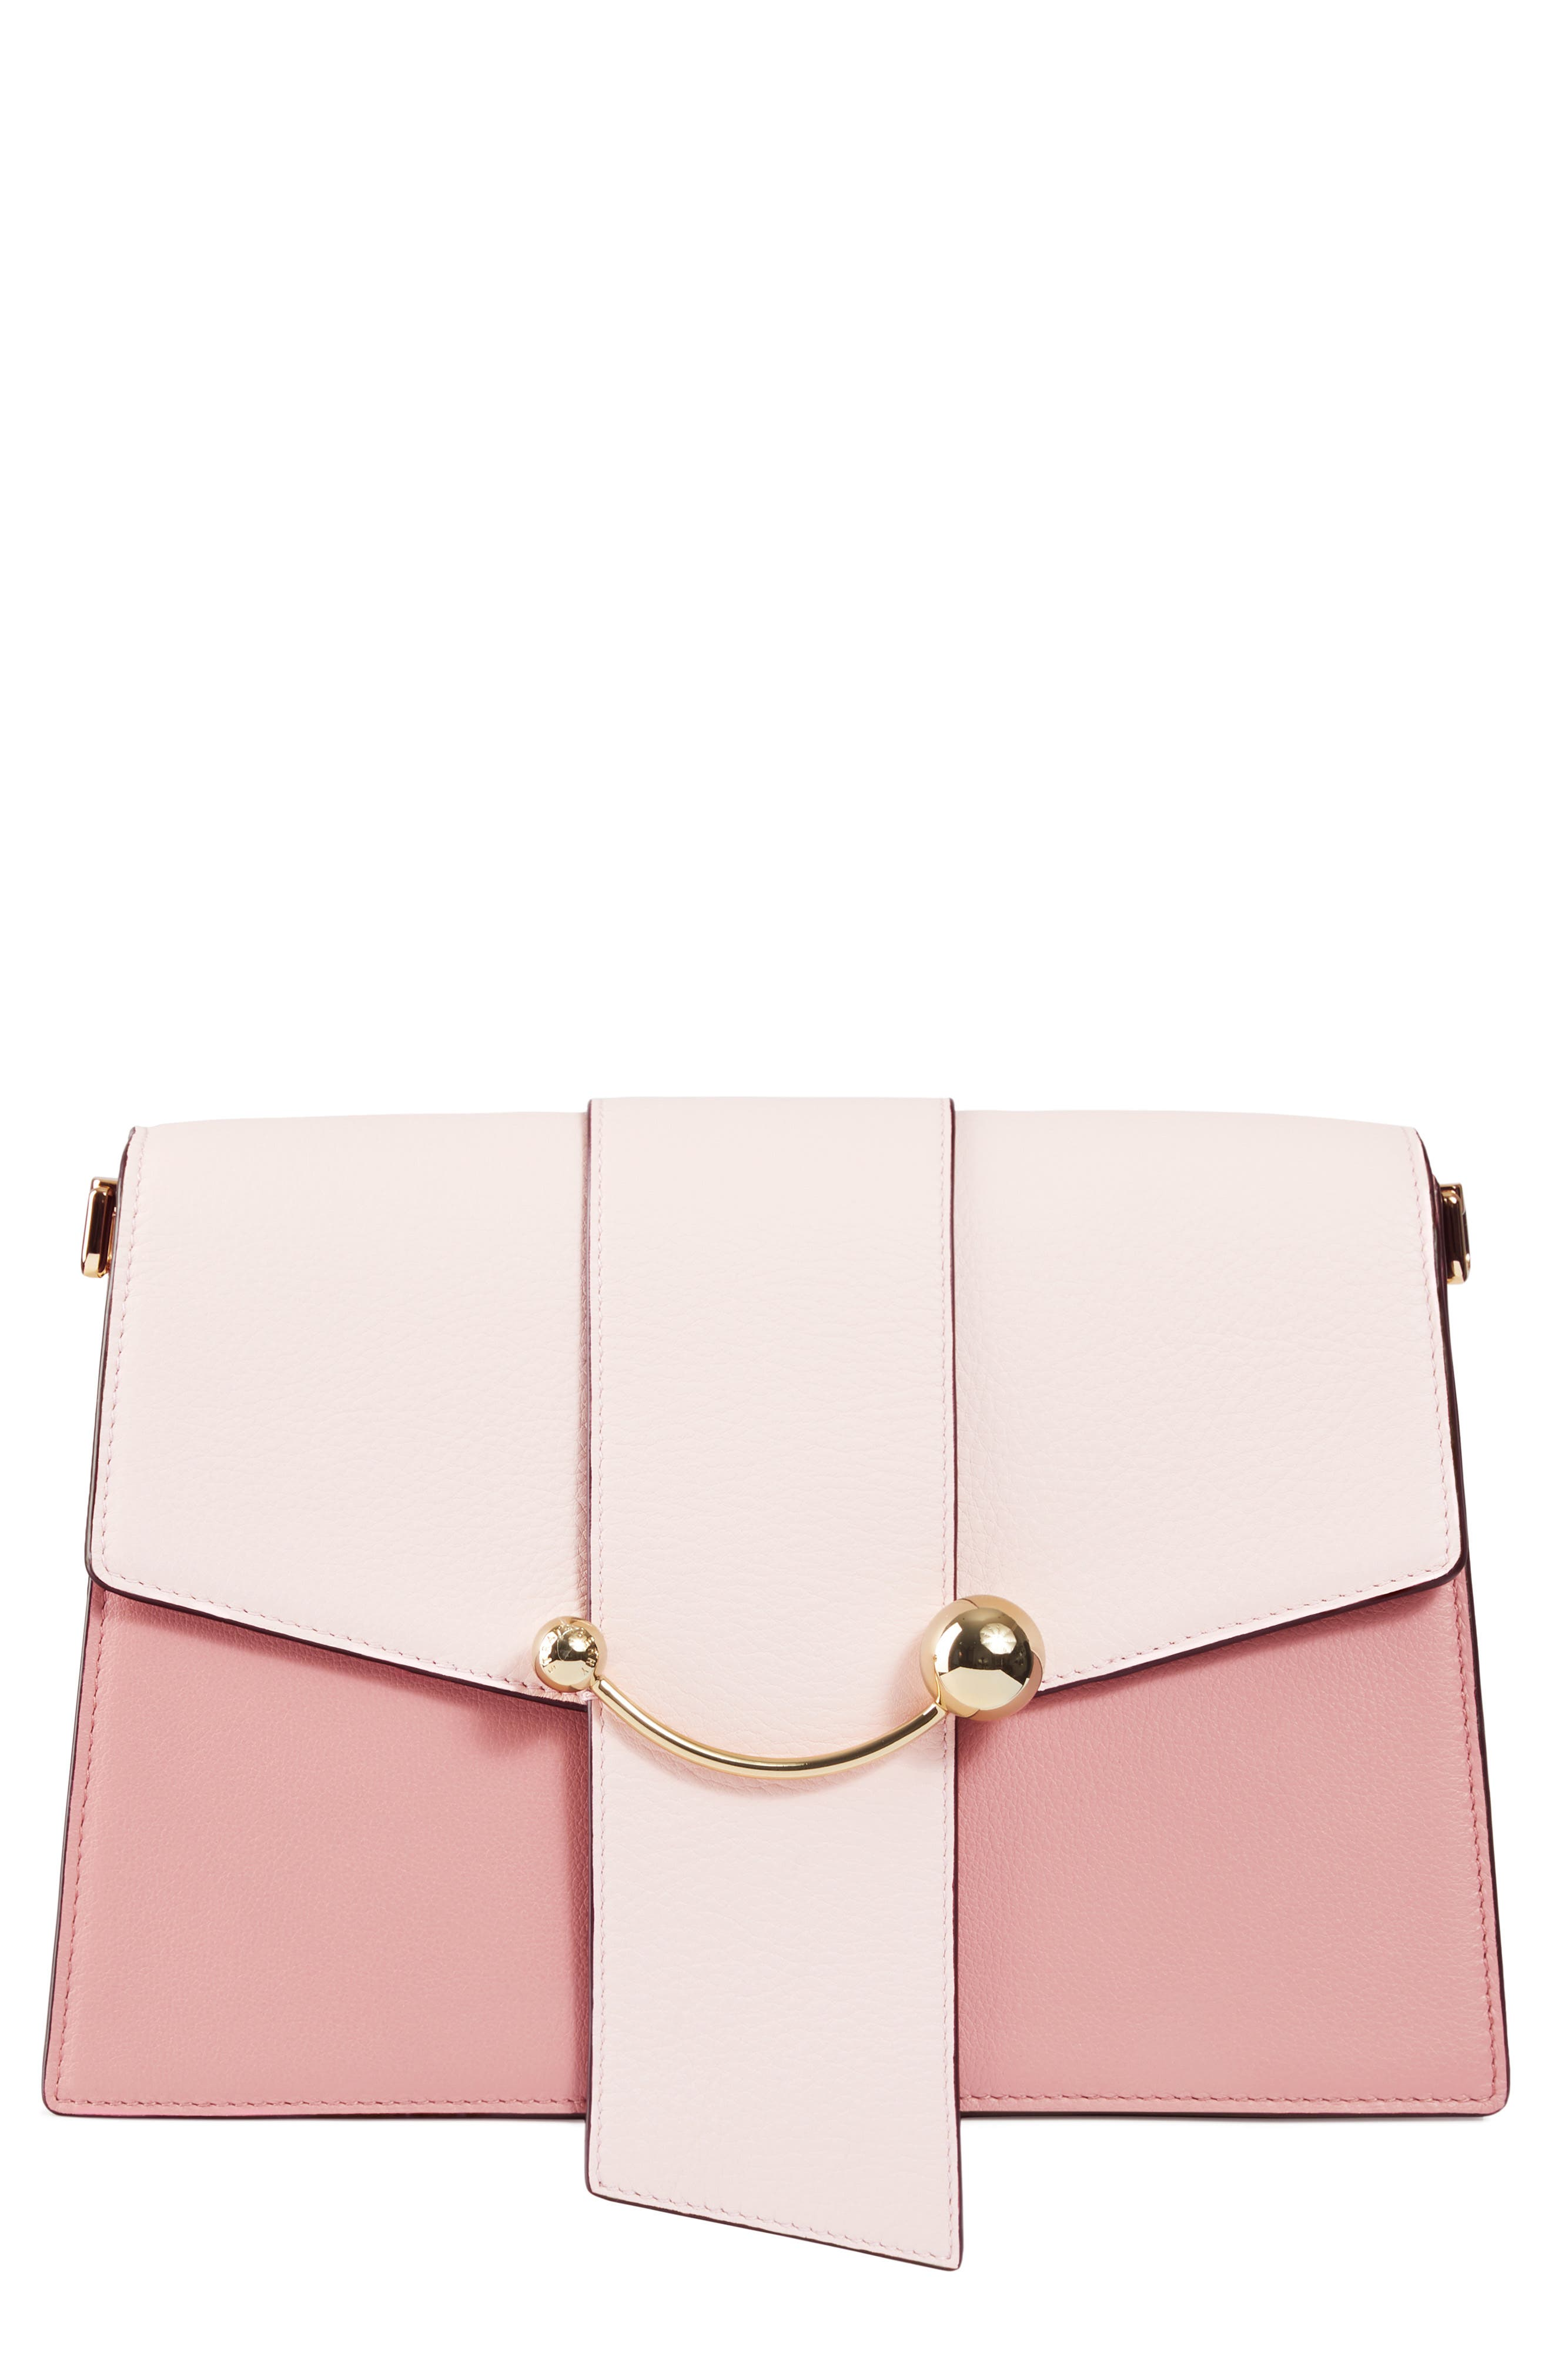 STRATHBERRY Mini Crescent Leather Clutch, Main, color, BABY PINK/ ROSE/ BURGUNDY